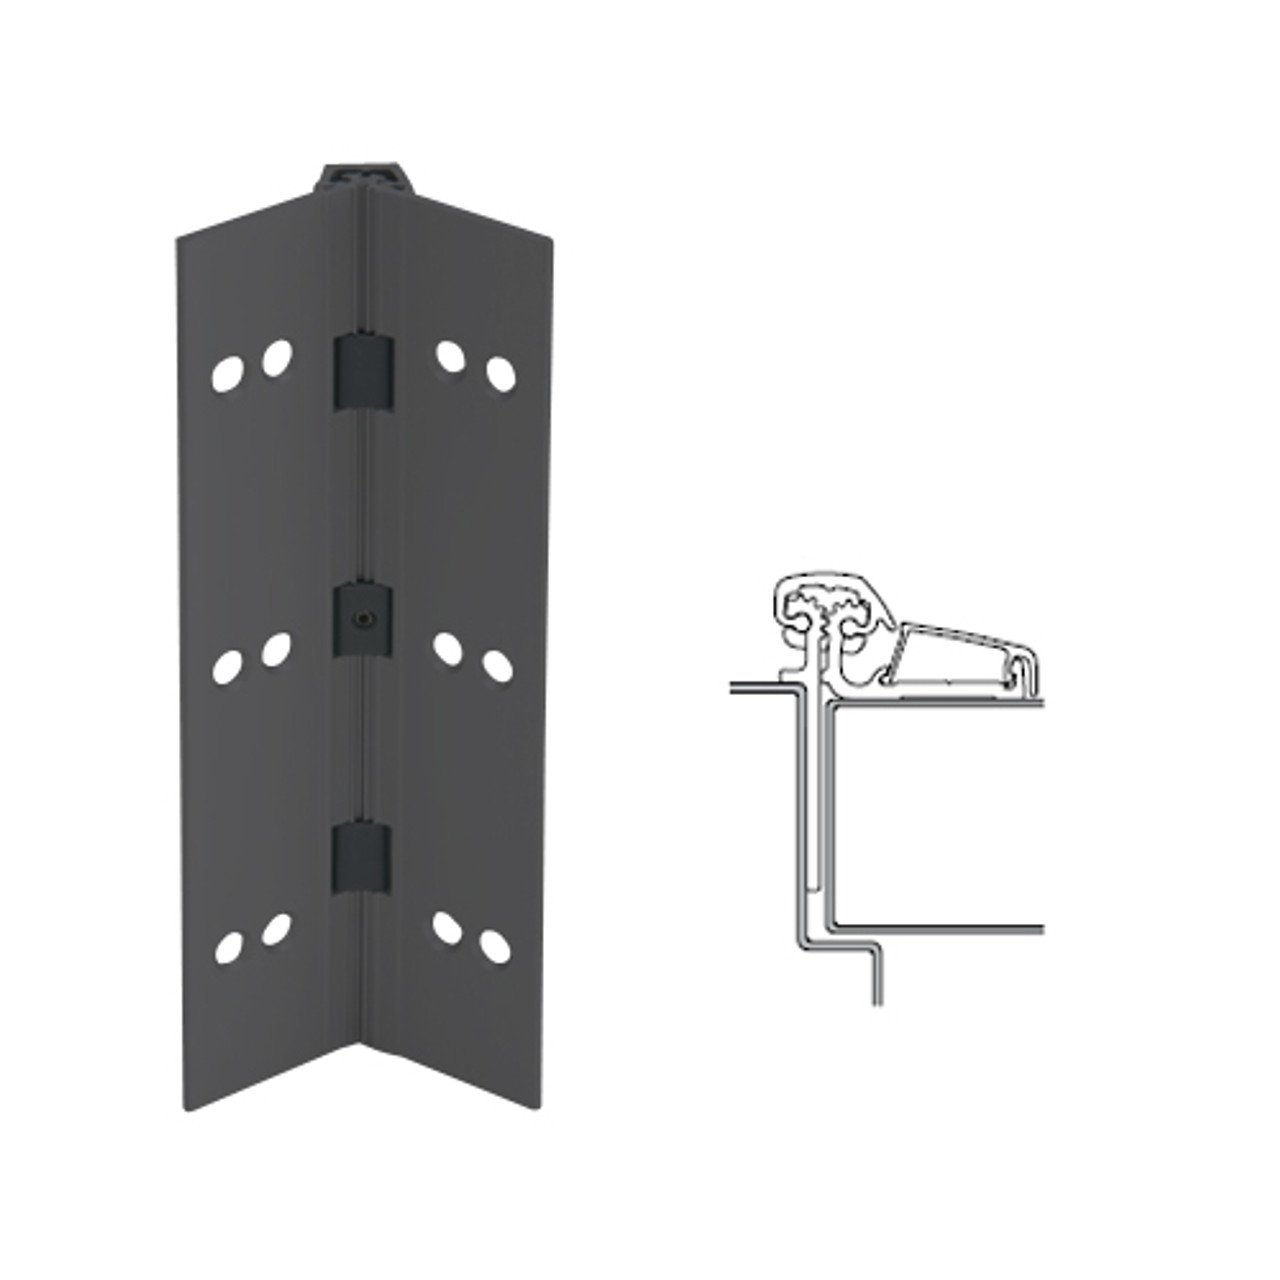 053XY-315AN-85-SECHM IVES Adjustable Half Surface Continuous Geared Hinges with Security Screws - Hex Pin Drive in Anodized Black